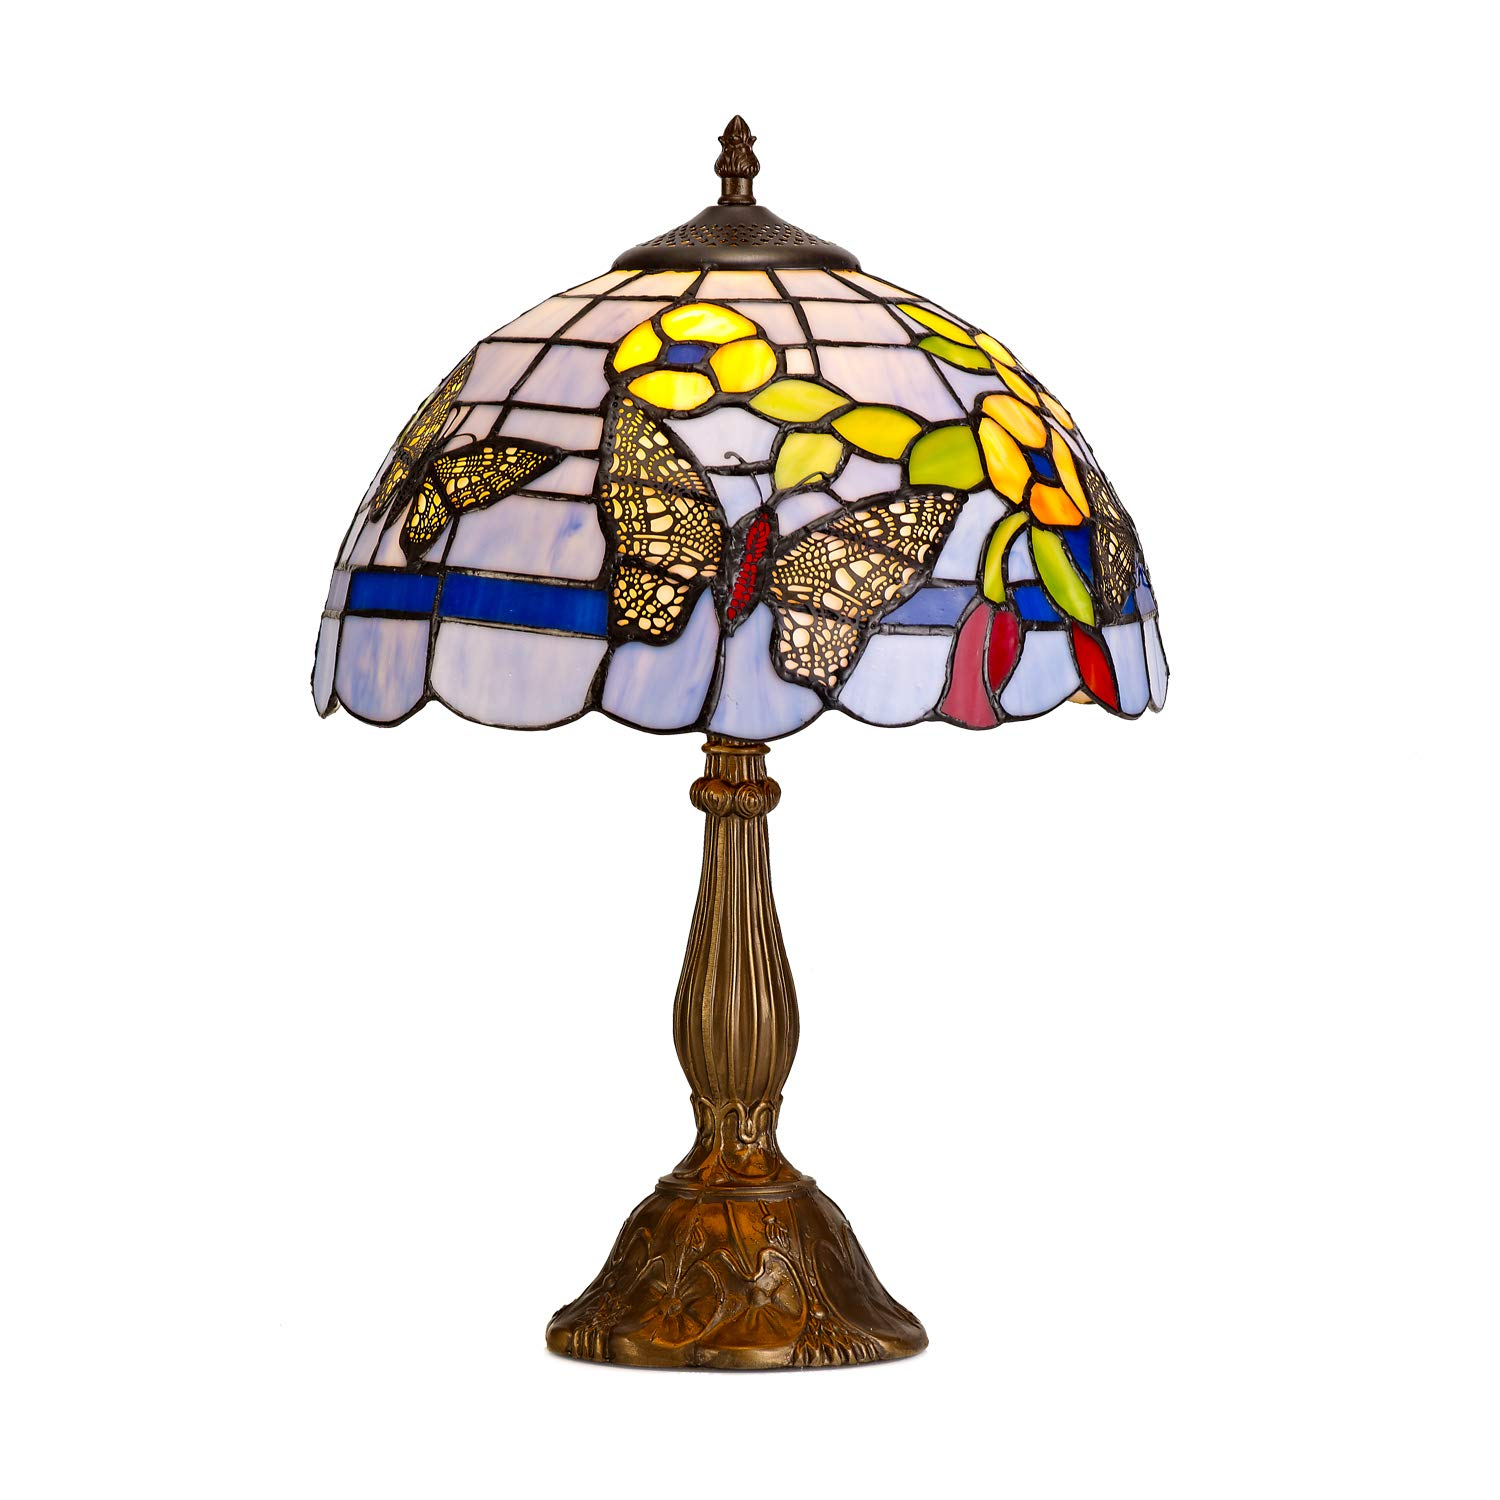 """Tiffany Table Lamp Butterfly & Floral Patterns on Crafted Lampshade, UL Listed 19"""" Tall Blue Antique Decorative Tiffany Desk Lamp with Stained Glass Shade for Living Room Bedroom, Bulb Included"""